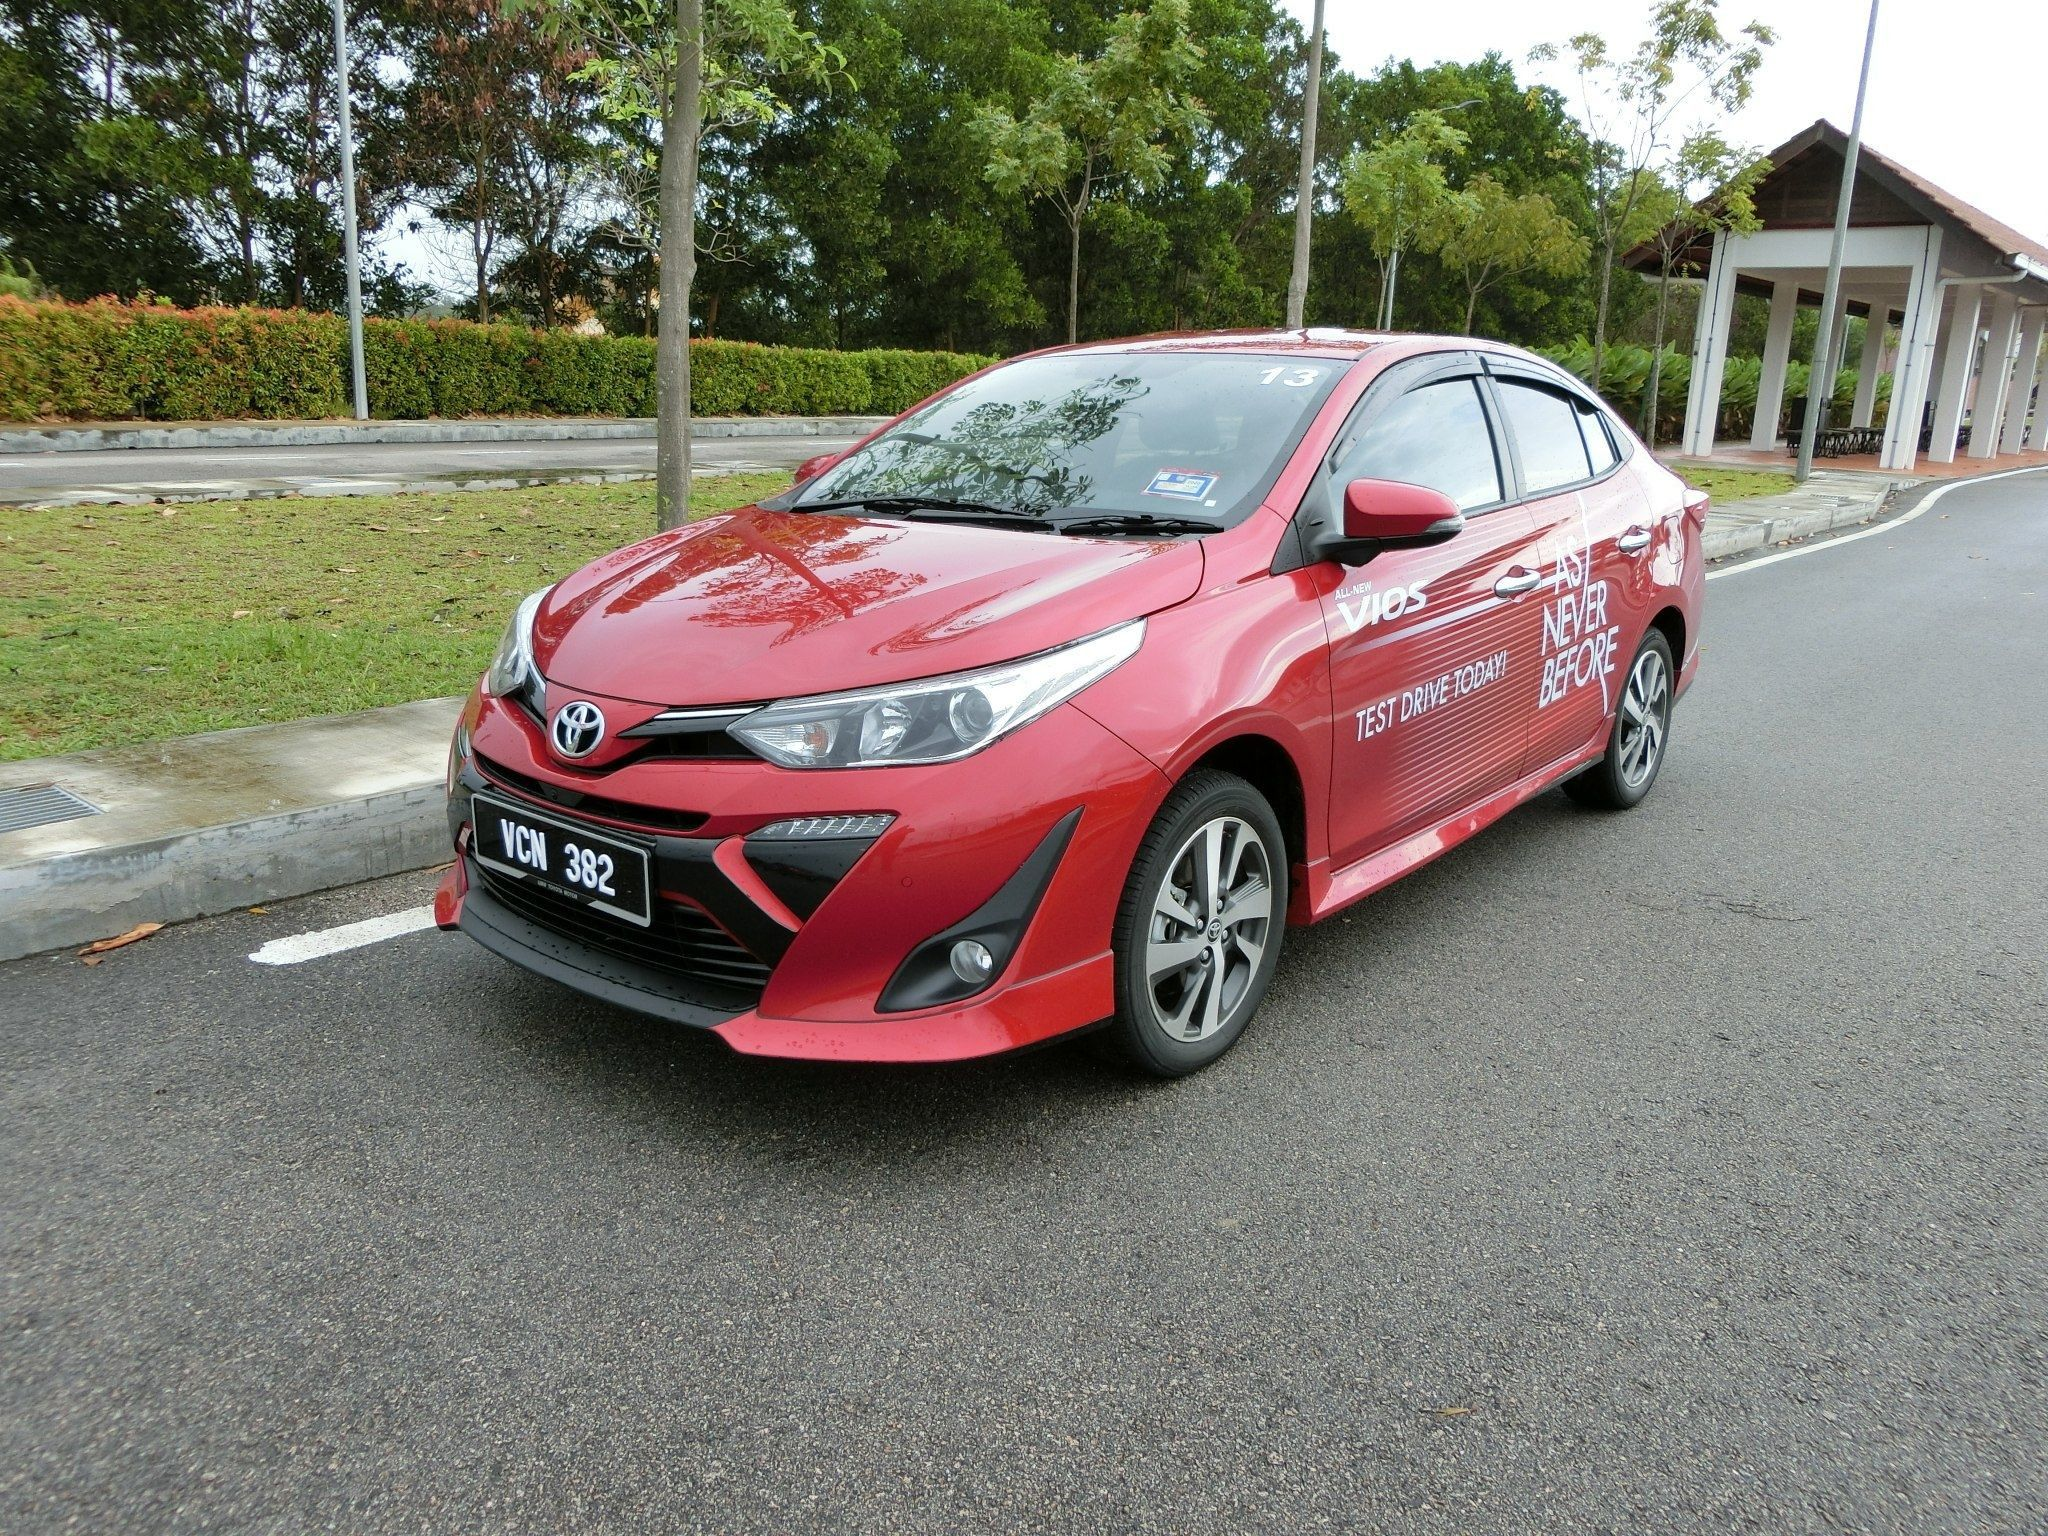 Toyota Vios 2020 Model New Release For Toyota Vios 2020 Model Overview And Price Di 2020 Toyota Modifikasi Mobil Mobil